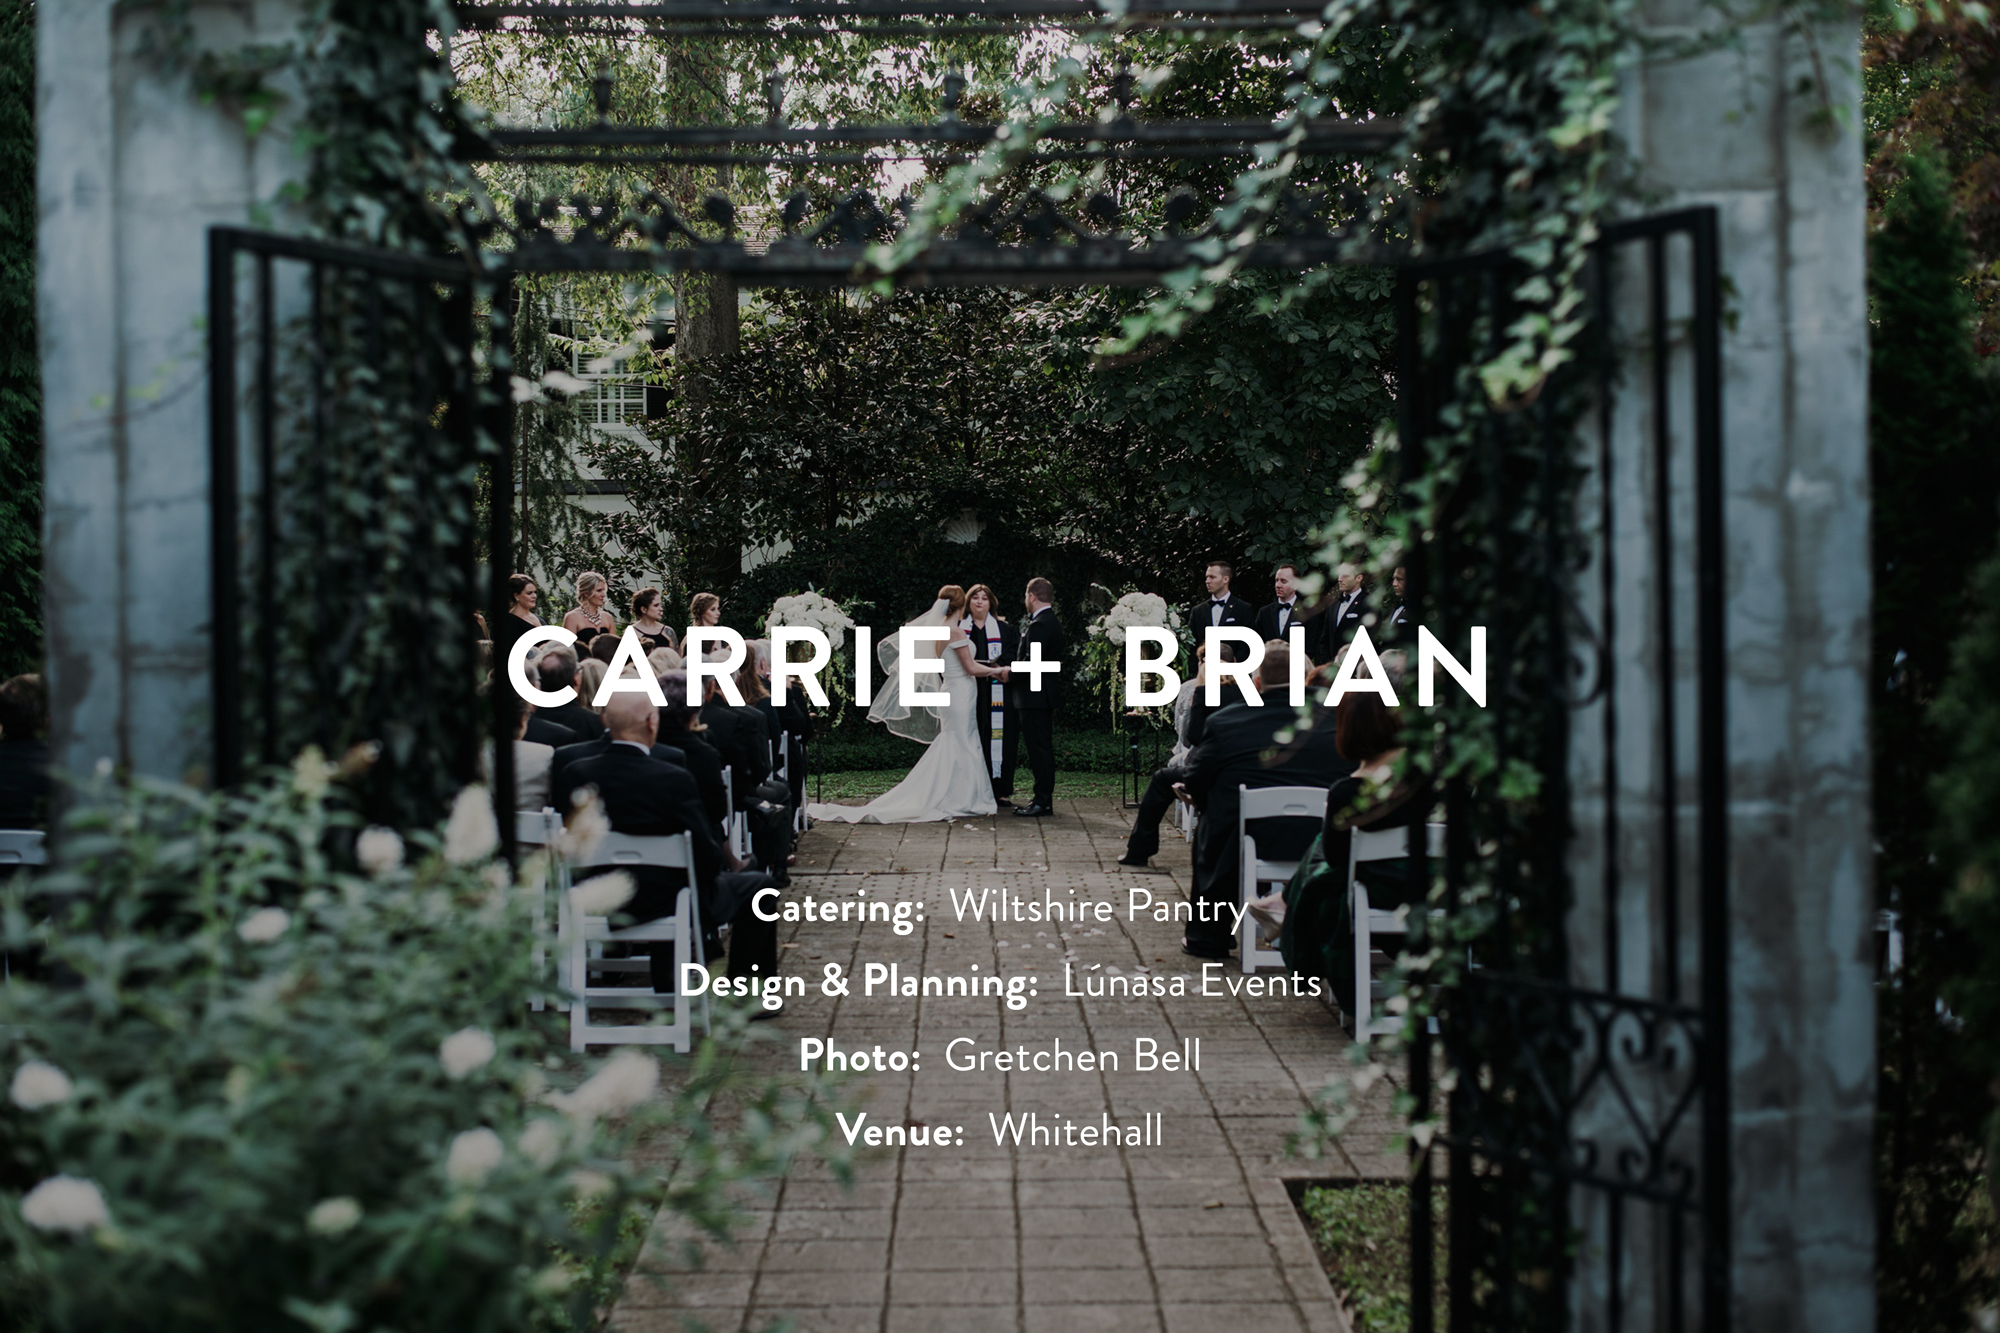 Carrie_Brian_Cover.jpg